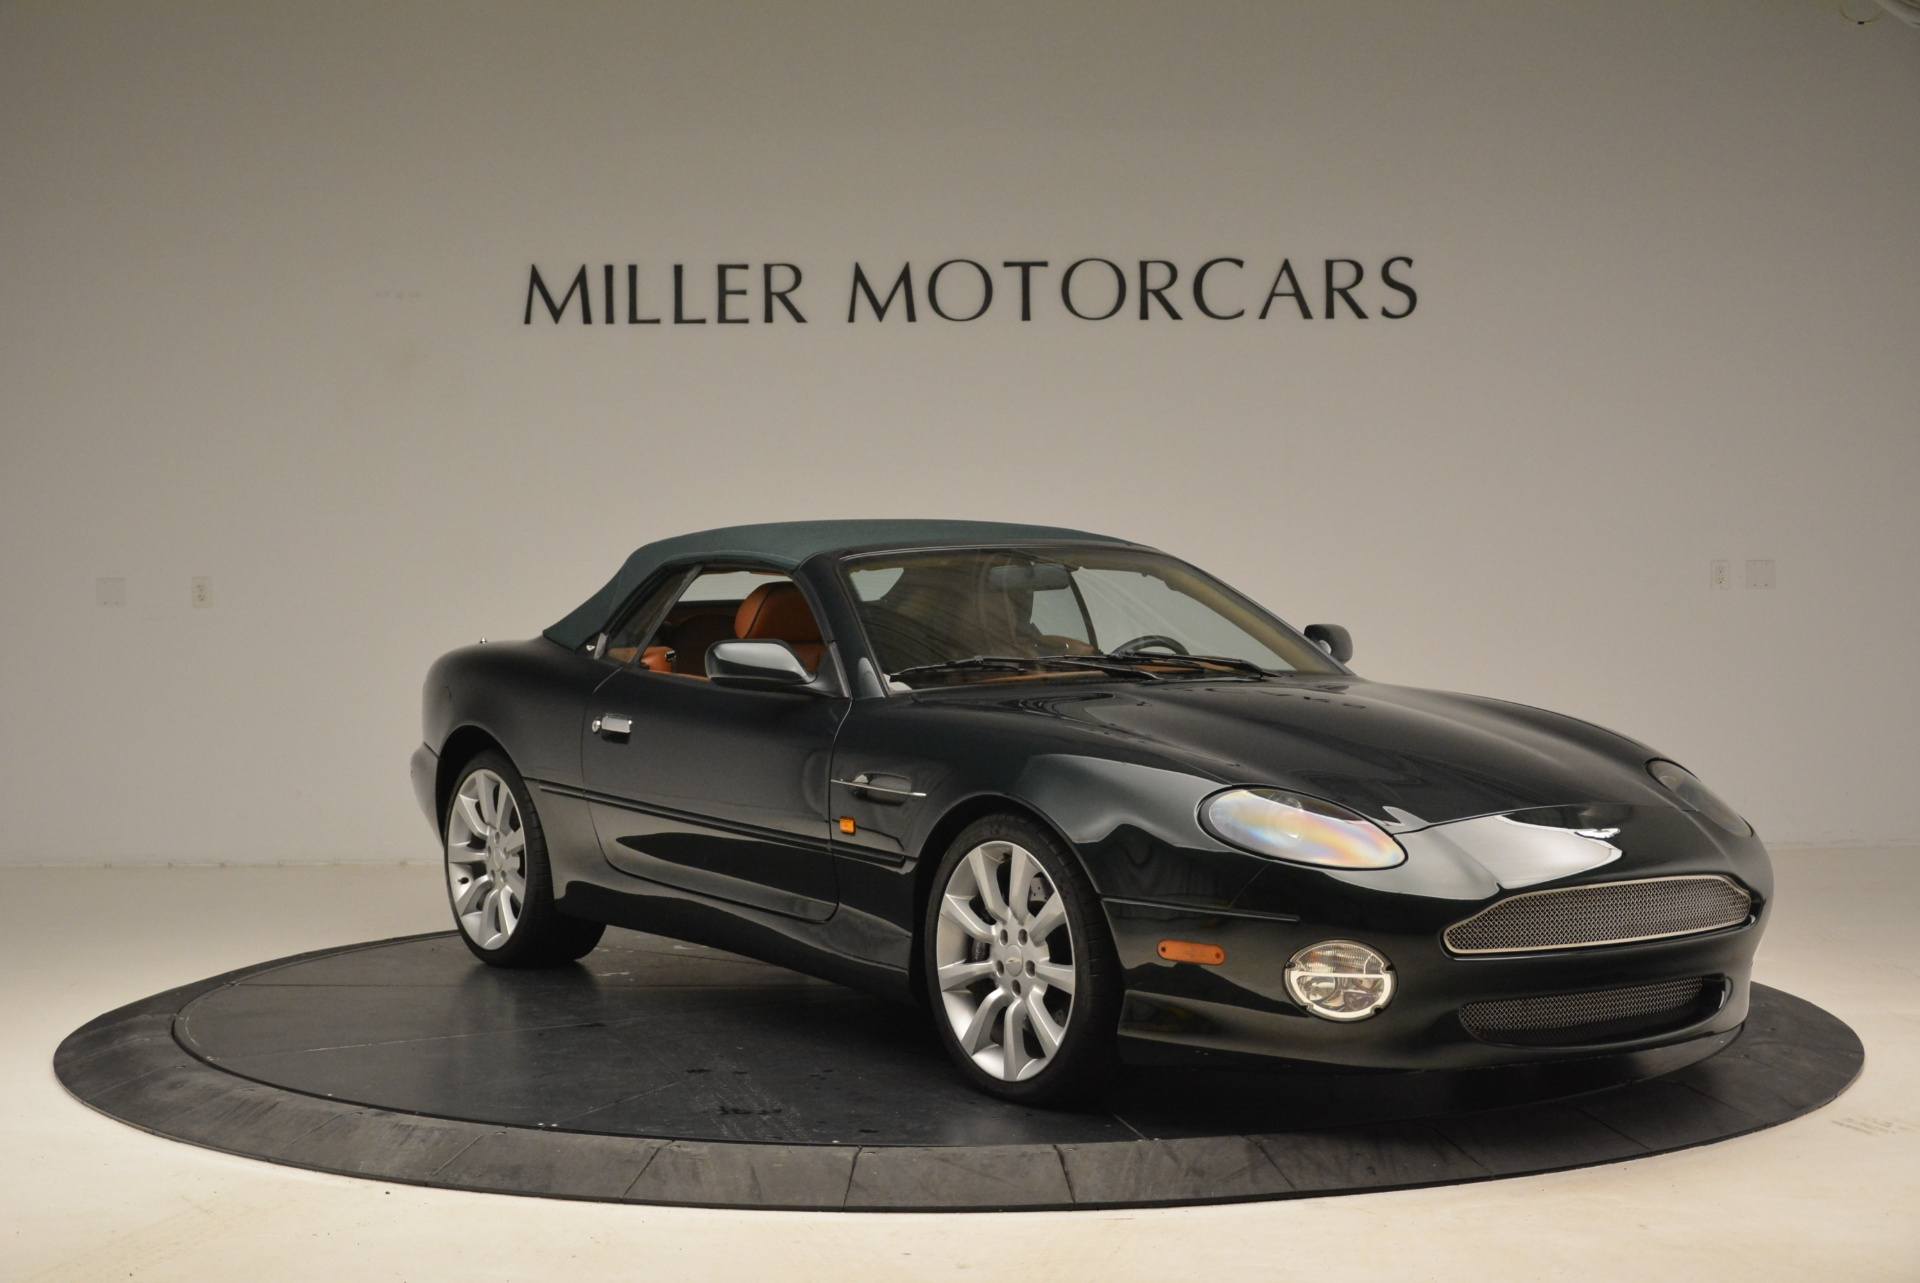 Used 2003 Aston Martin DB7 Vantage Volante For Sale In Greenwich, CT 2084_p13